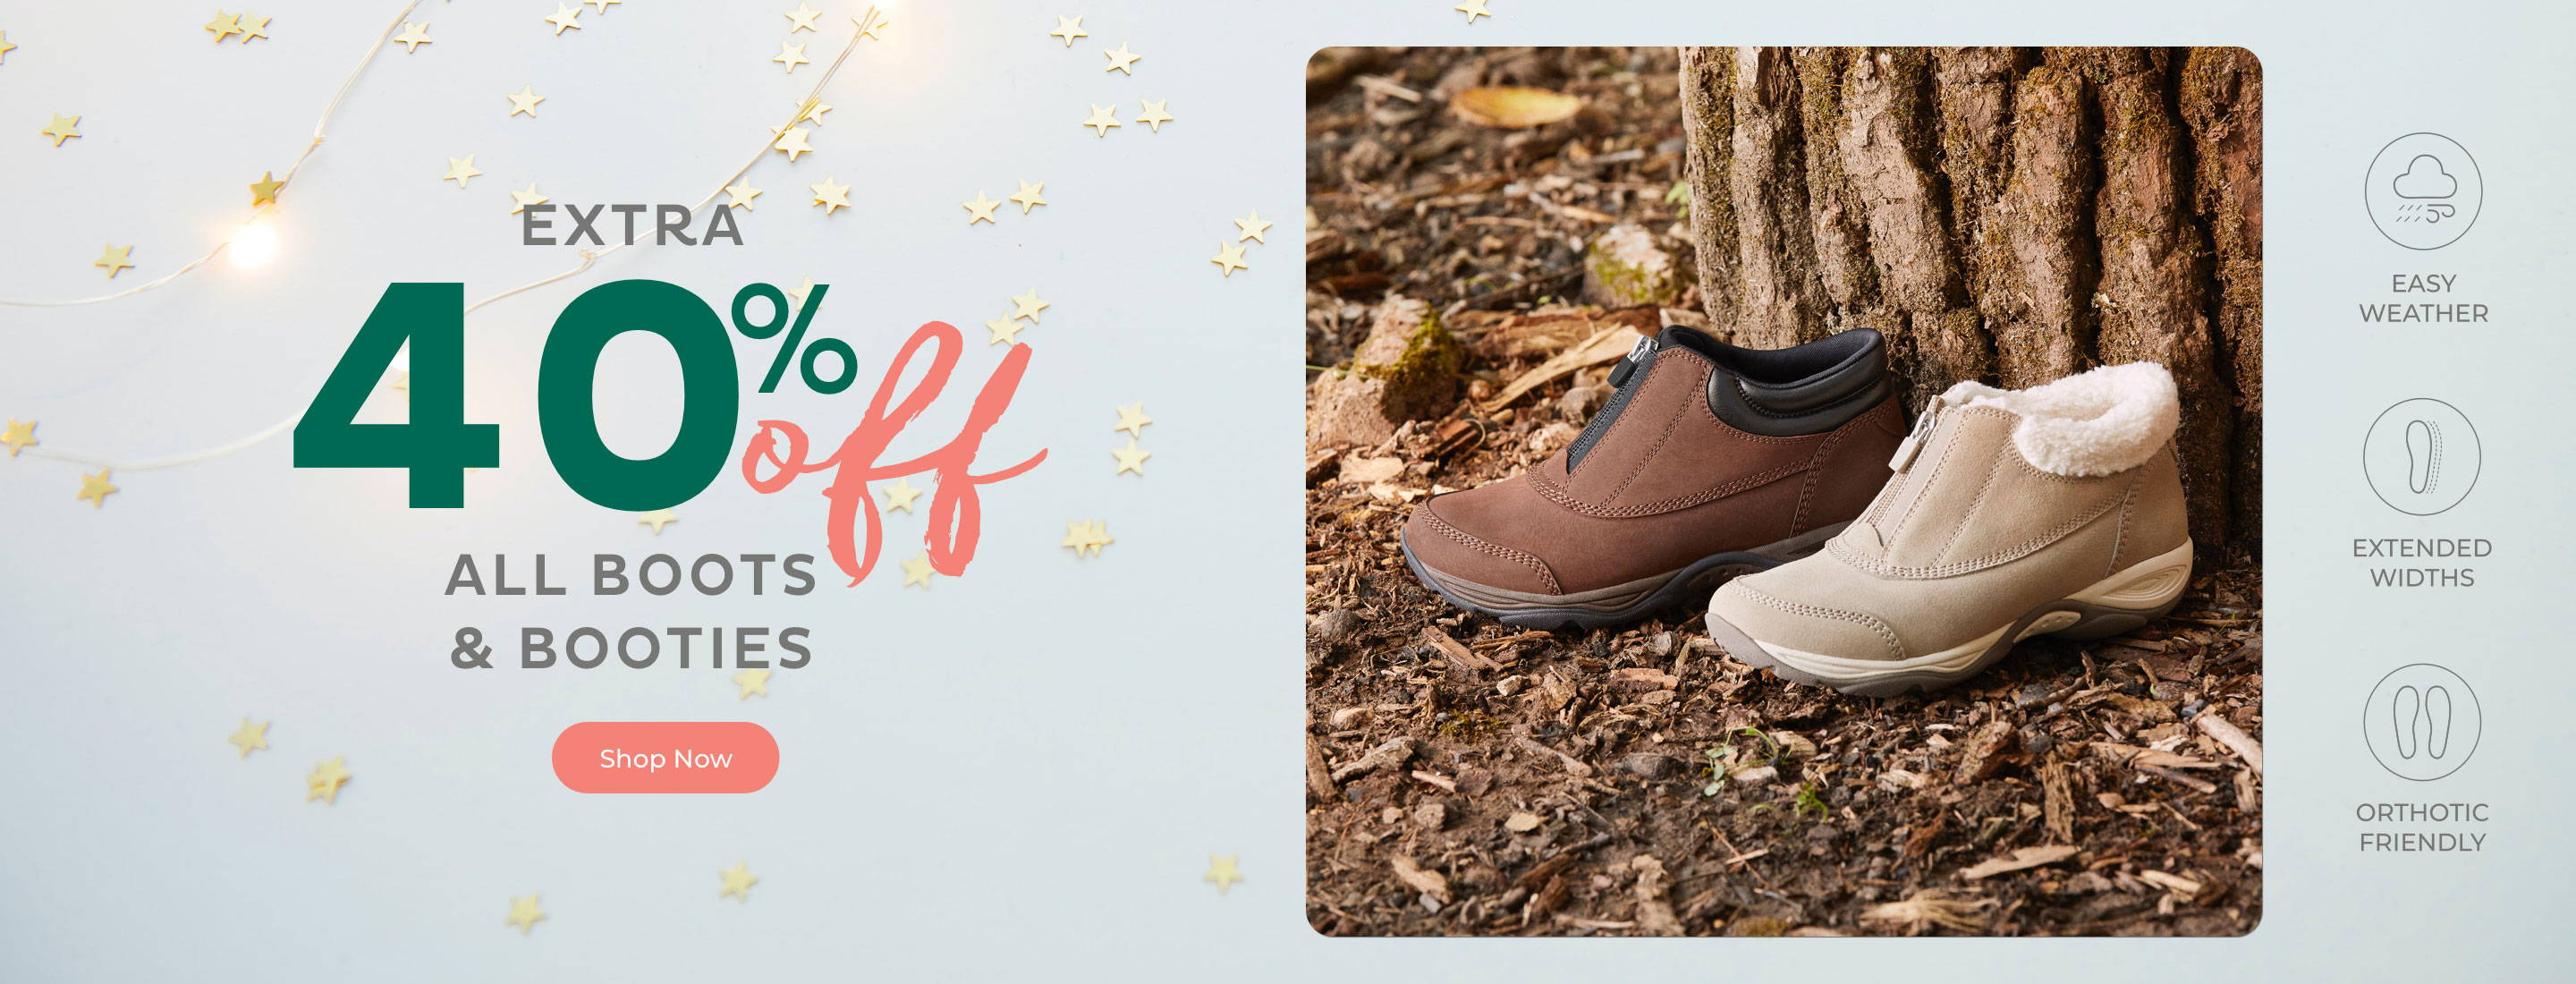 Extra 40% Off All Boots & Booties